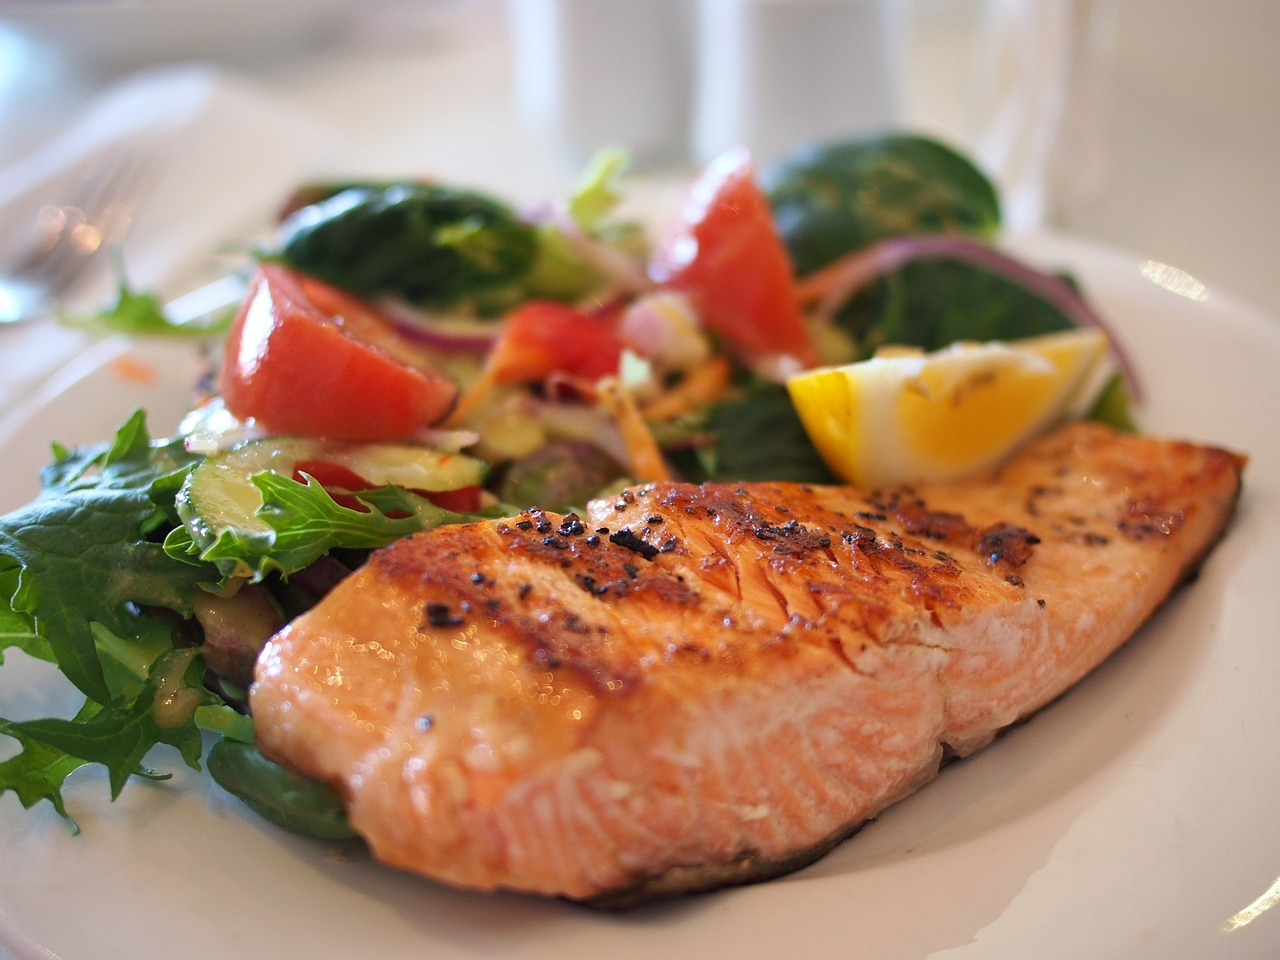 How To Cook Fish In The Oven